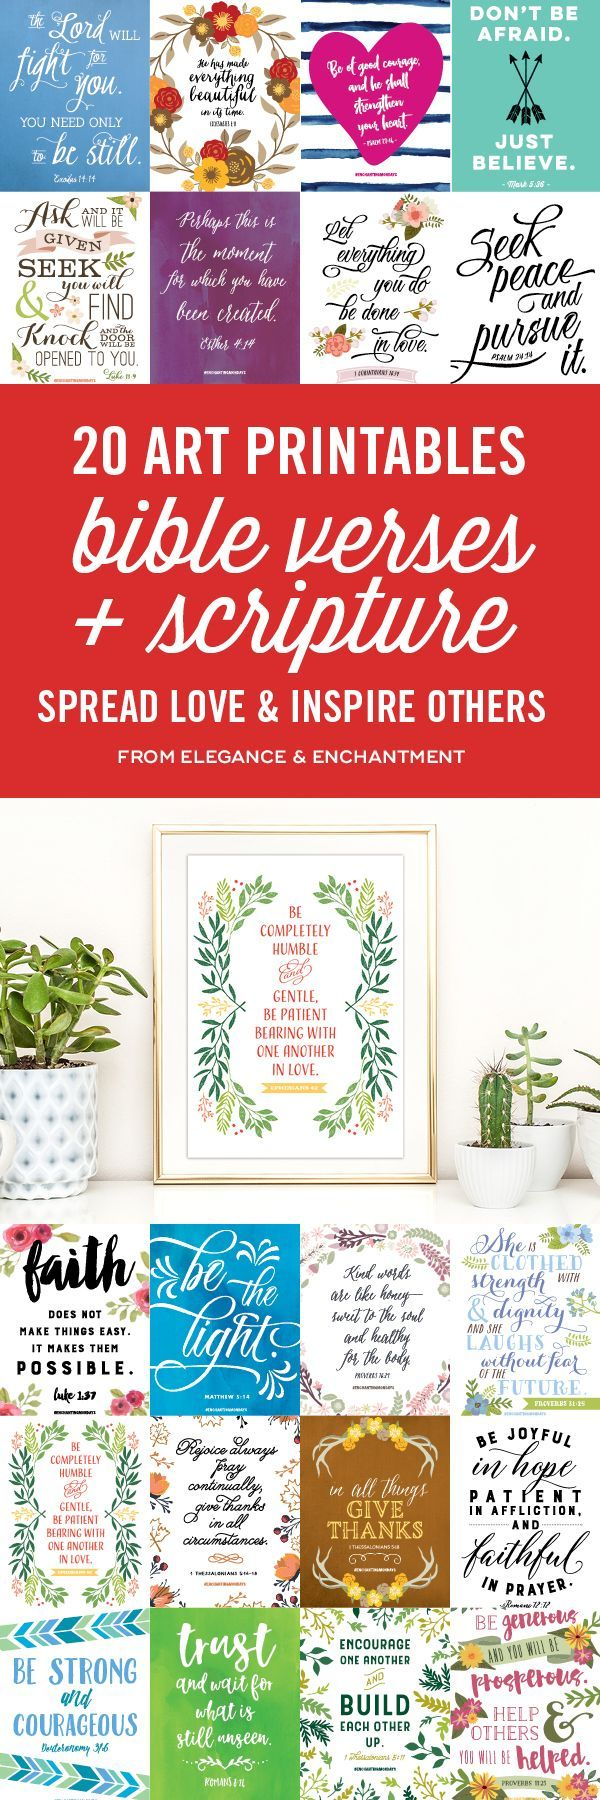 Strengthen your faith and inspire others to do the same. Print one of these 20 bible verse + scripture art prints or choose from over 160 art printables from the Enchanting Mondays Library. This post includes two free downloads! When you inspire somebody else, they will be motivated to do the same for others, making these the gifts that keep giving. // From Elegance & Enchantment.